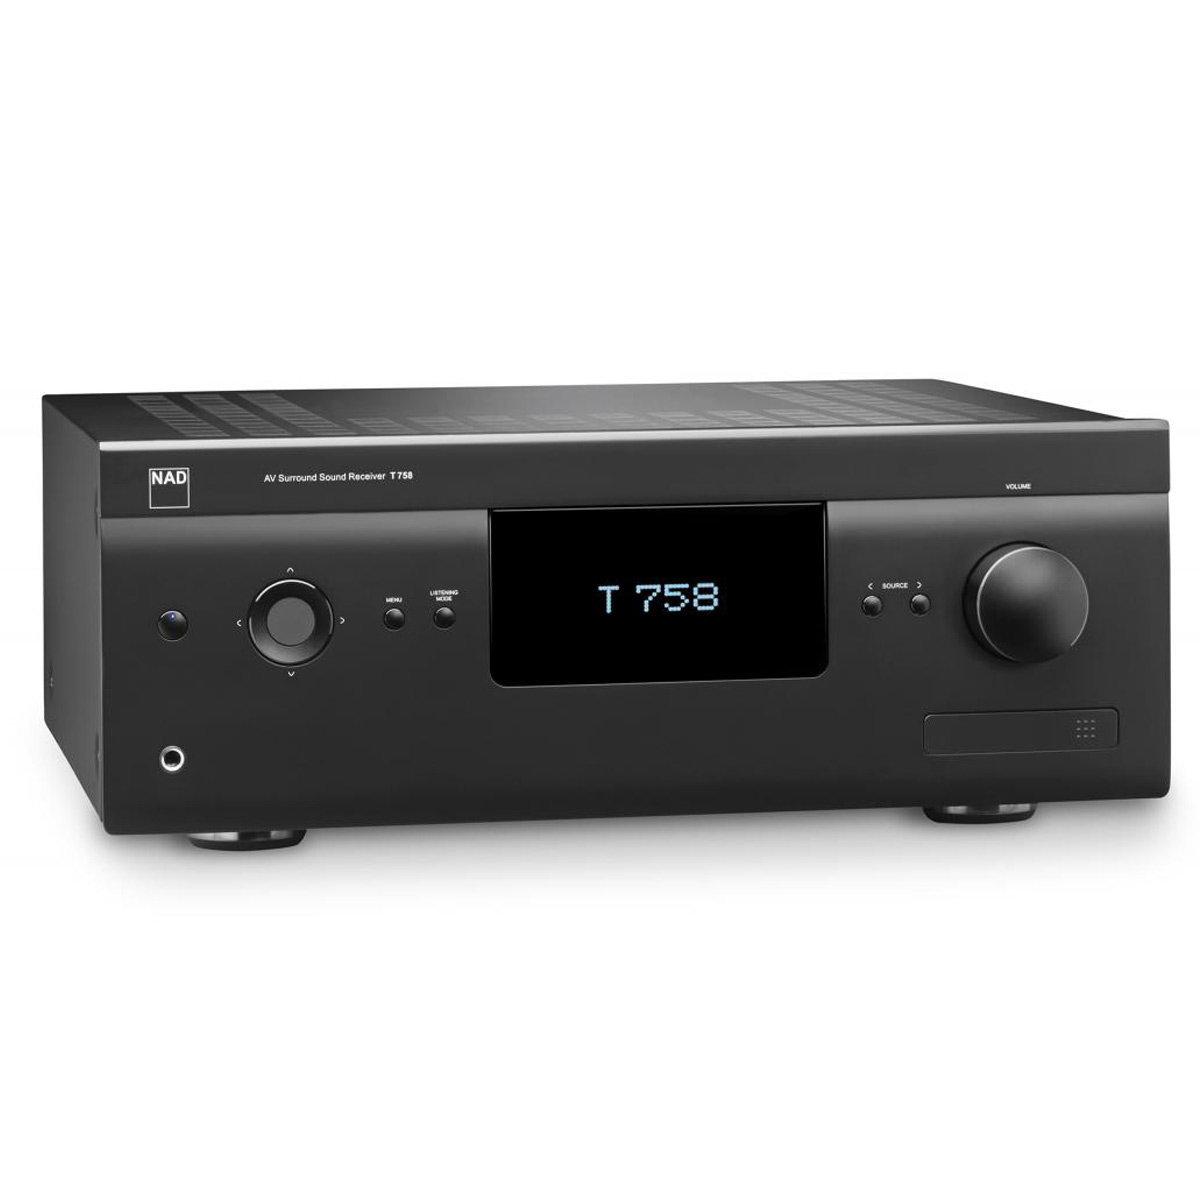 View Larger Image of T 758 V3 7.1 A/V Surround Sound Receiver